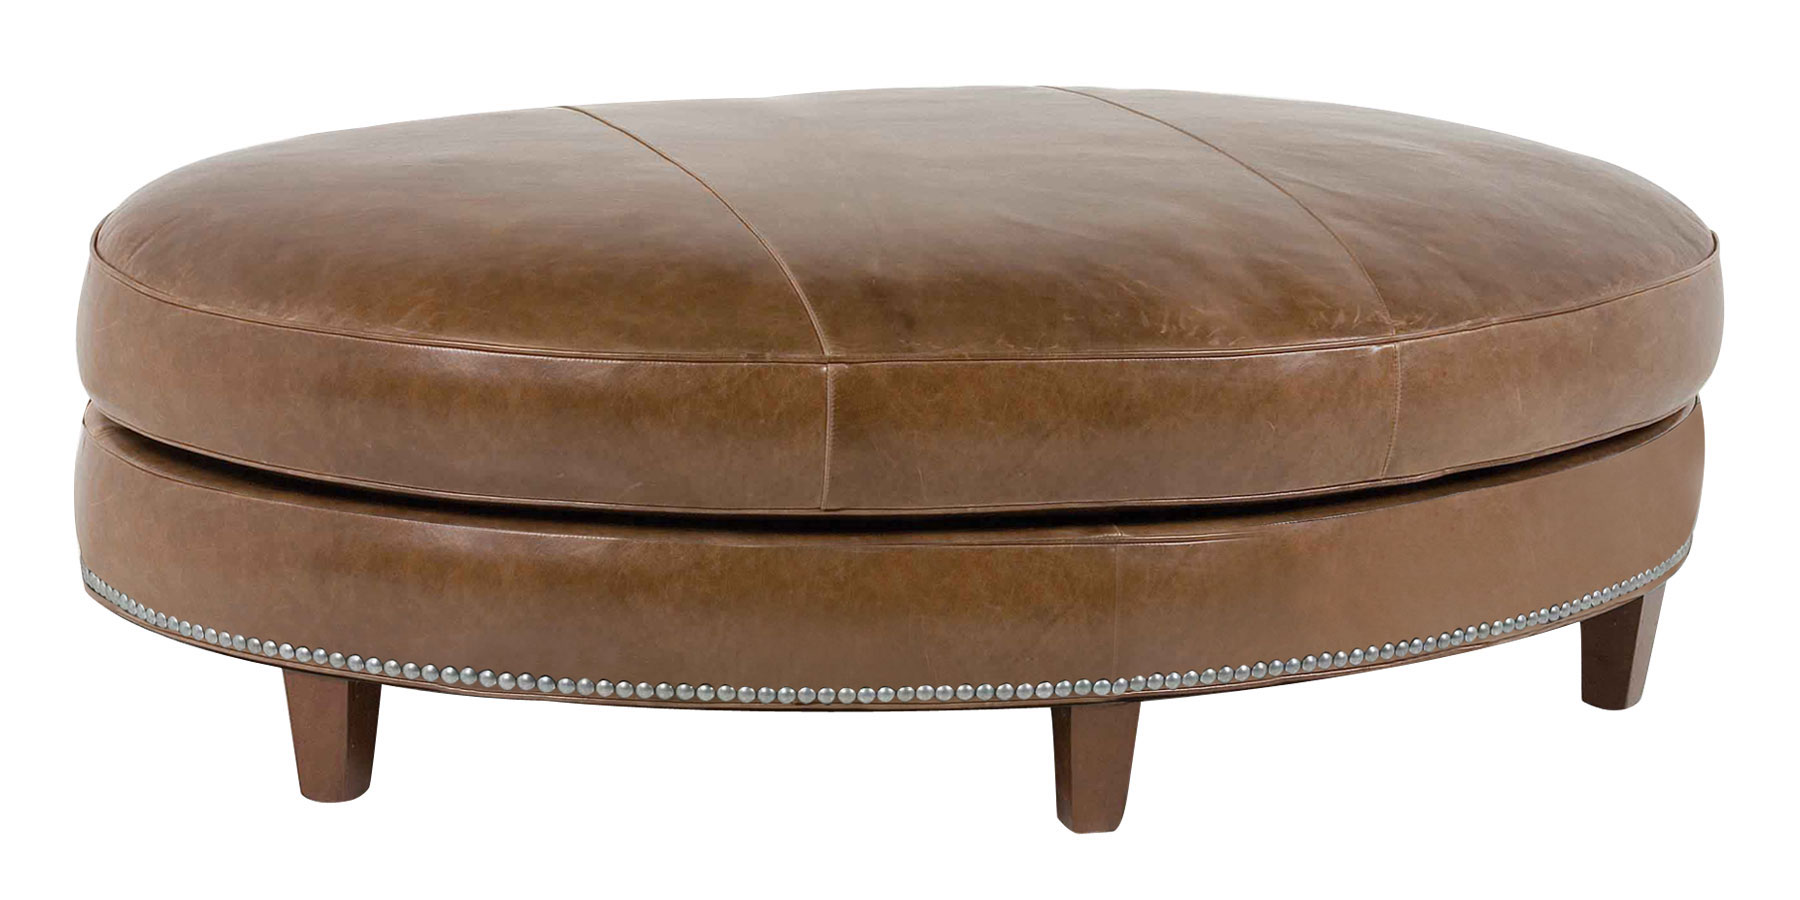 Large Oval Leather Coffee Table With Nails Club Furniture